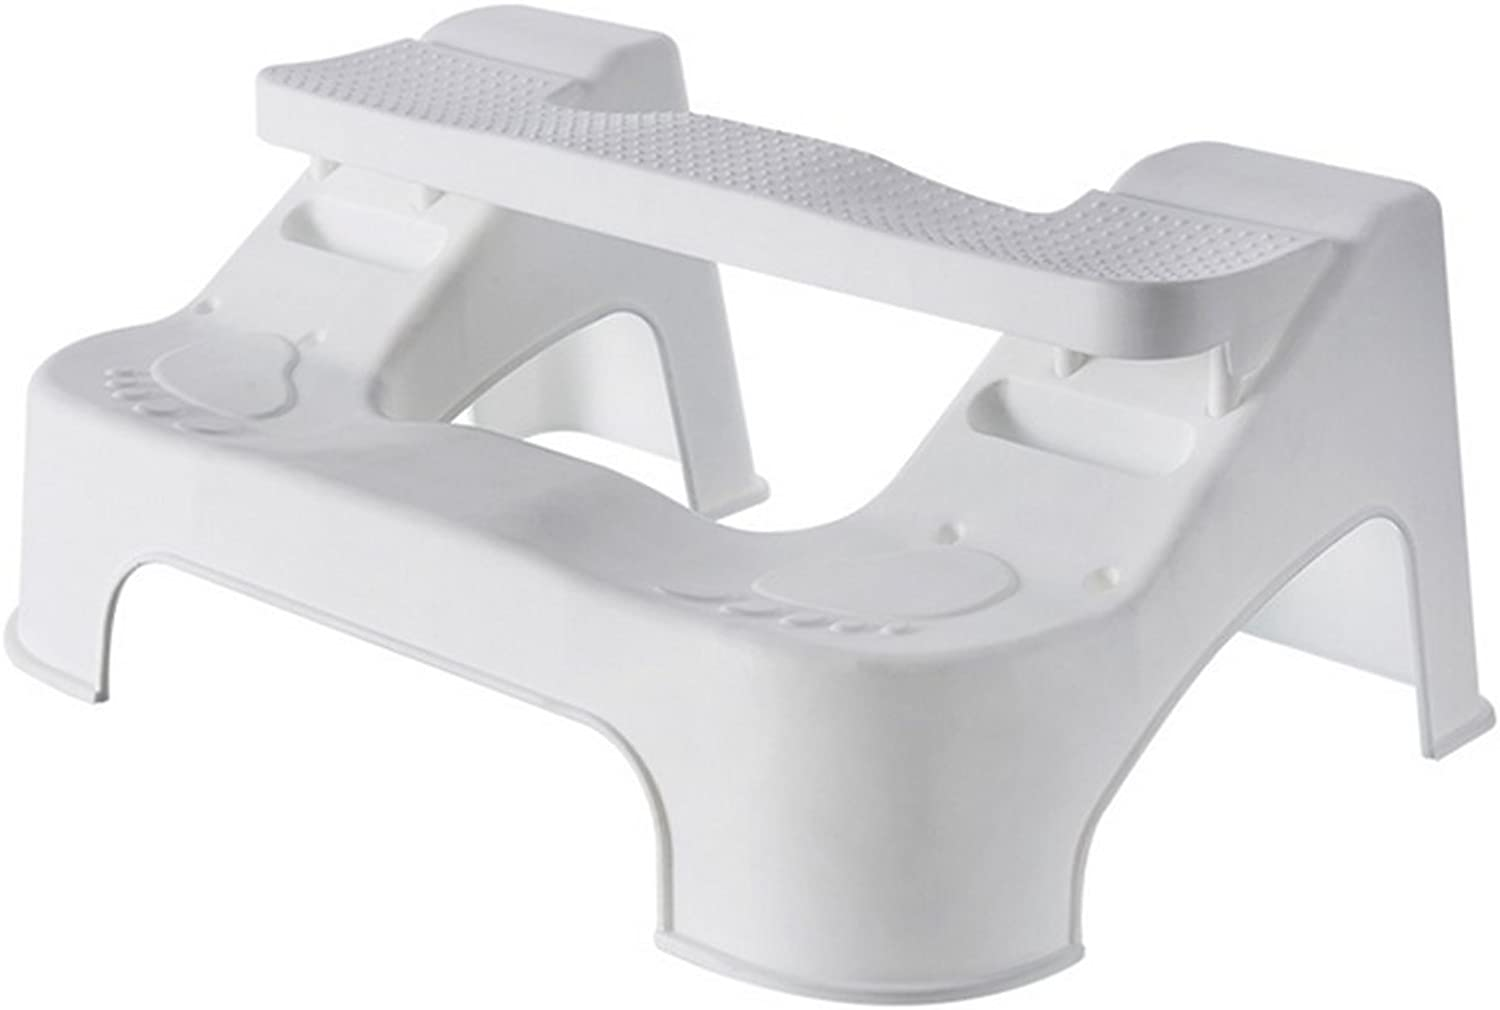 Squatting Toilet Stool   Non-Slip Adjustable Bathroom Toilet Stool   Relieves Constipation, Bloating   Aligns The Colon for Faster   Proper Toilet Posture